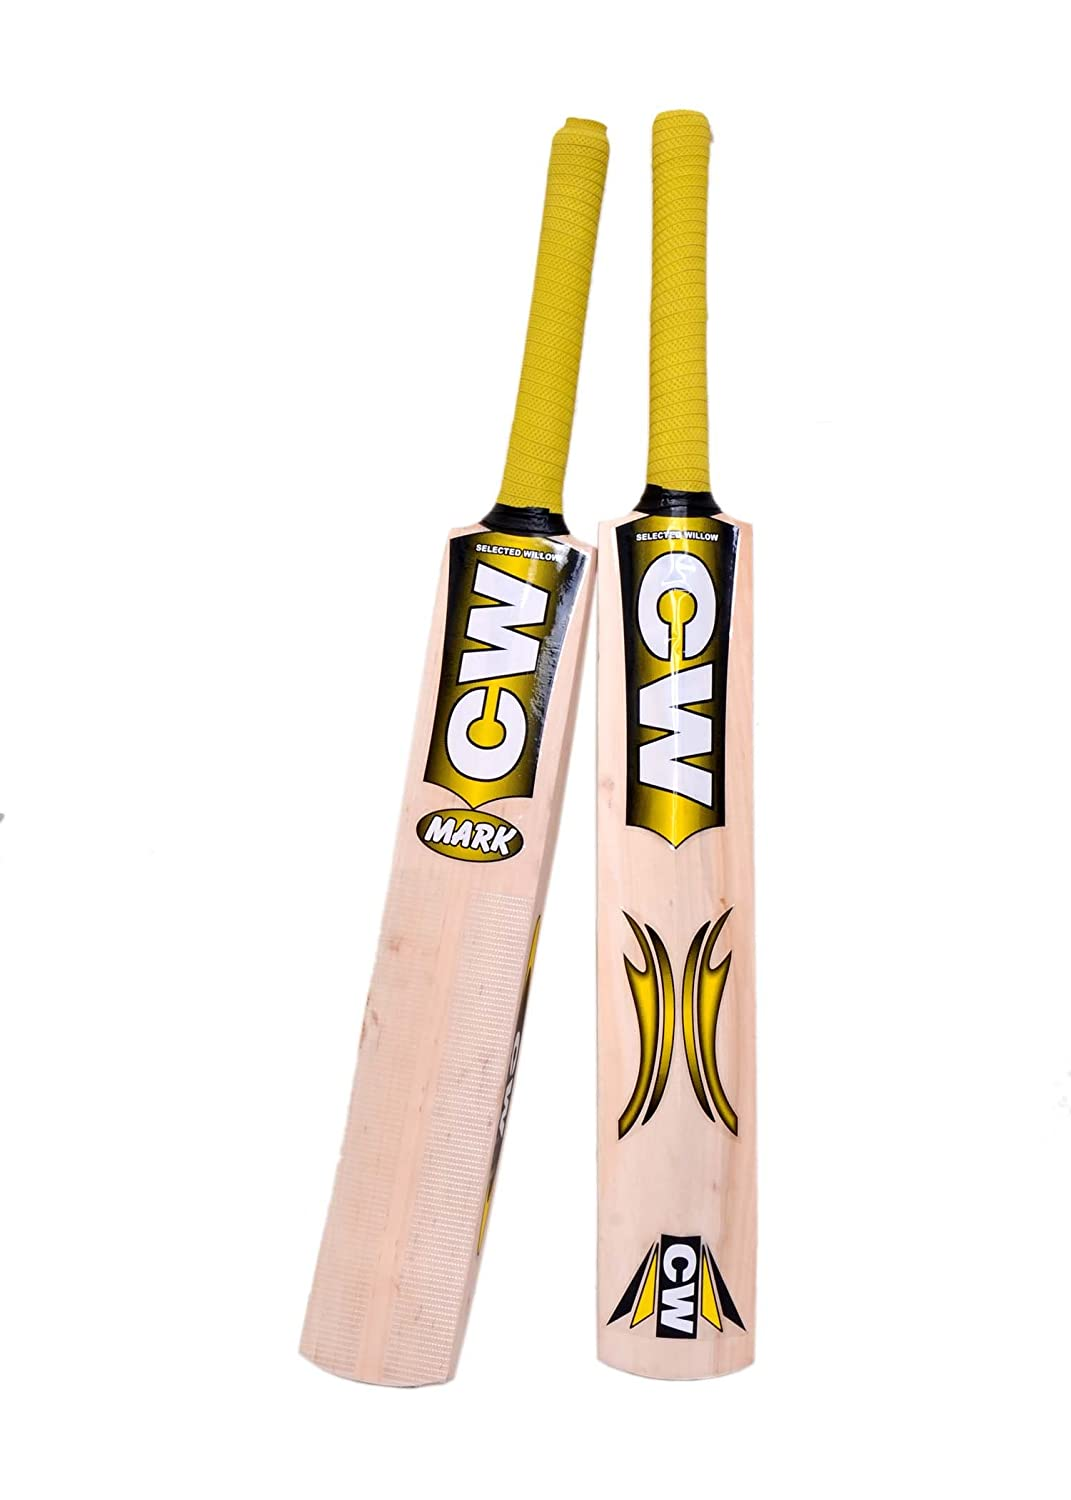 Cricket World Junior Size No 2 Ideal For 4 6 Years Child Original Kashmir Willow Short Handle Mix Cane Yellow Cricket Bat With Free Cover Amazon In Sports Fitness Outdoors